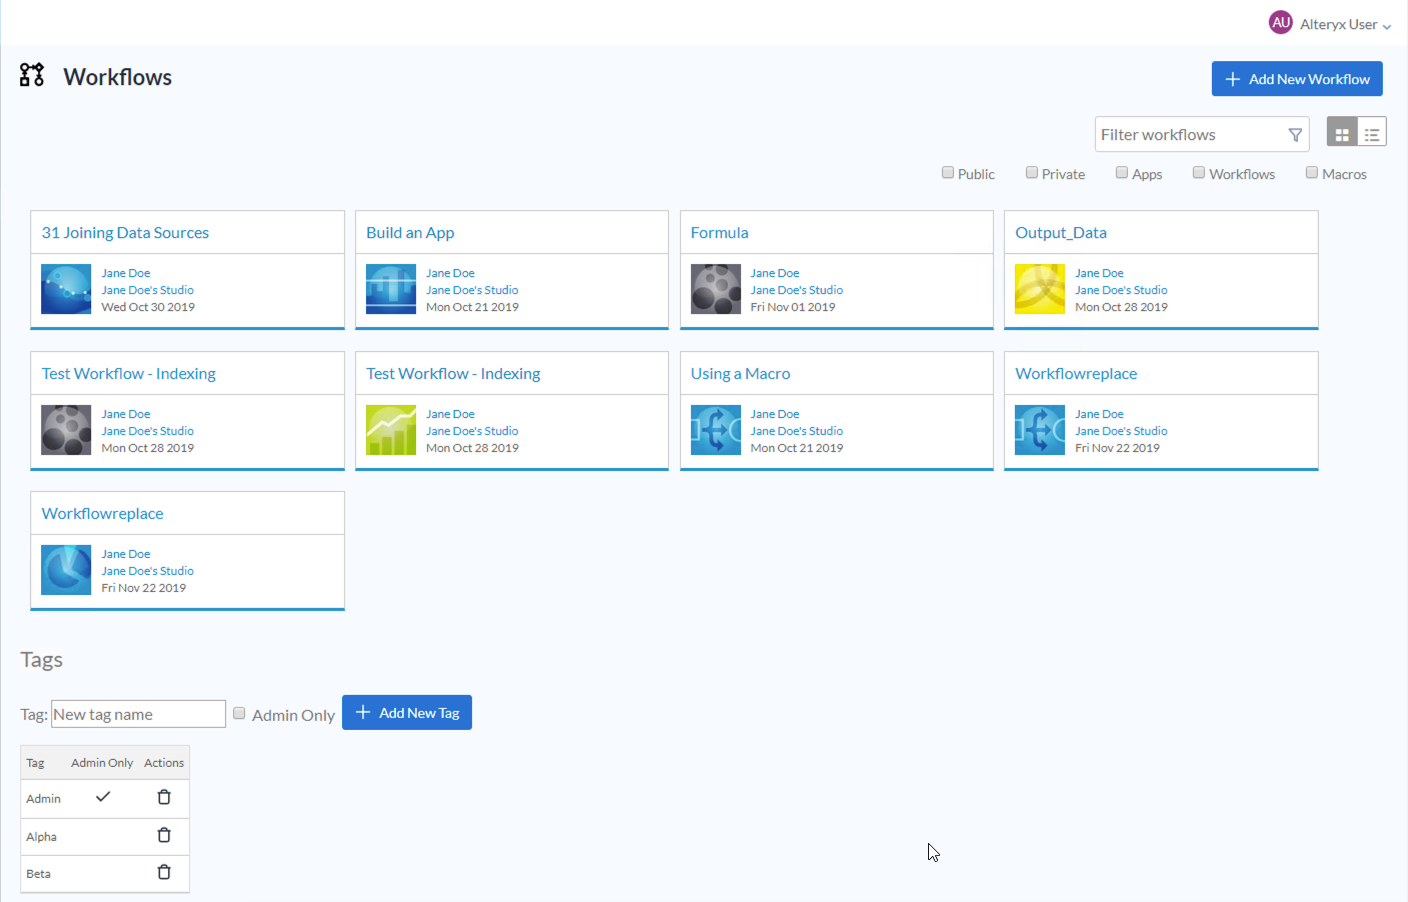 Screenshot of Workflows page from the Admin interface